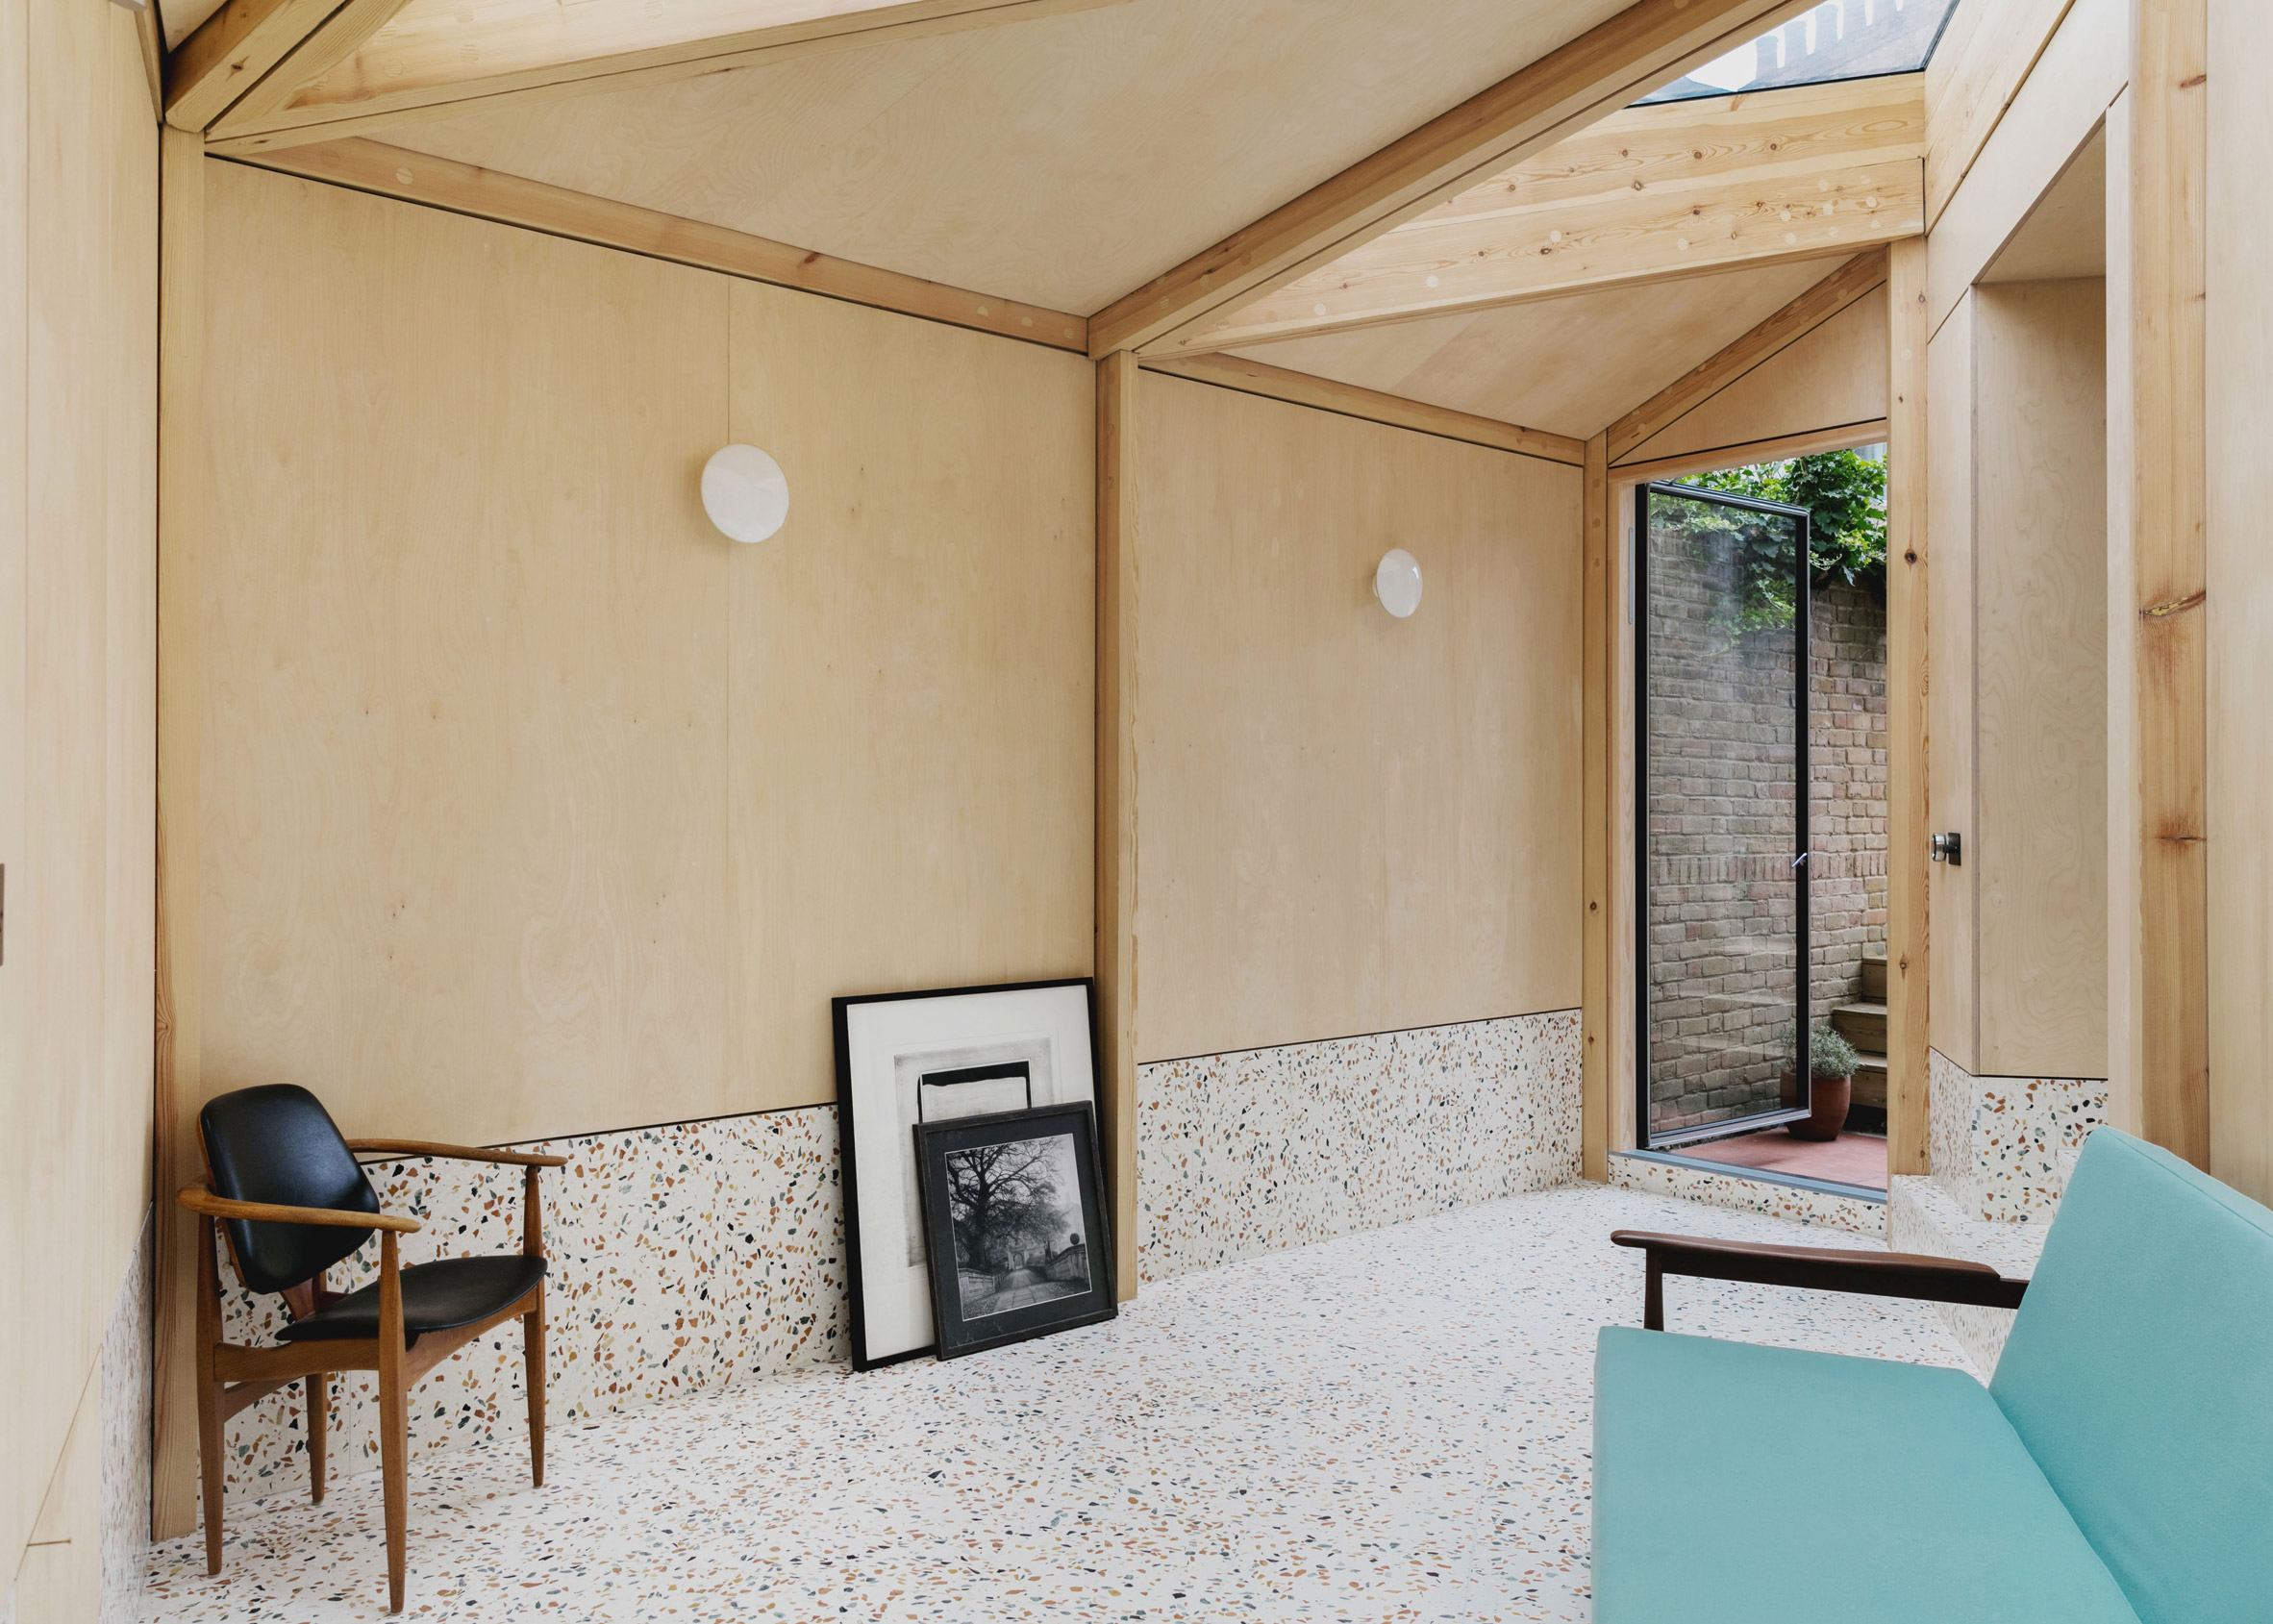 Montague Court, Hackney, by IF_DO